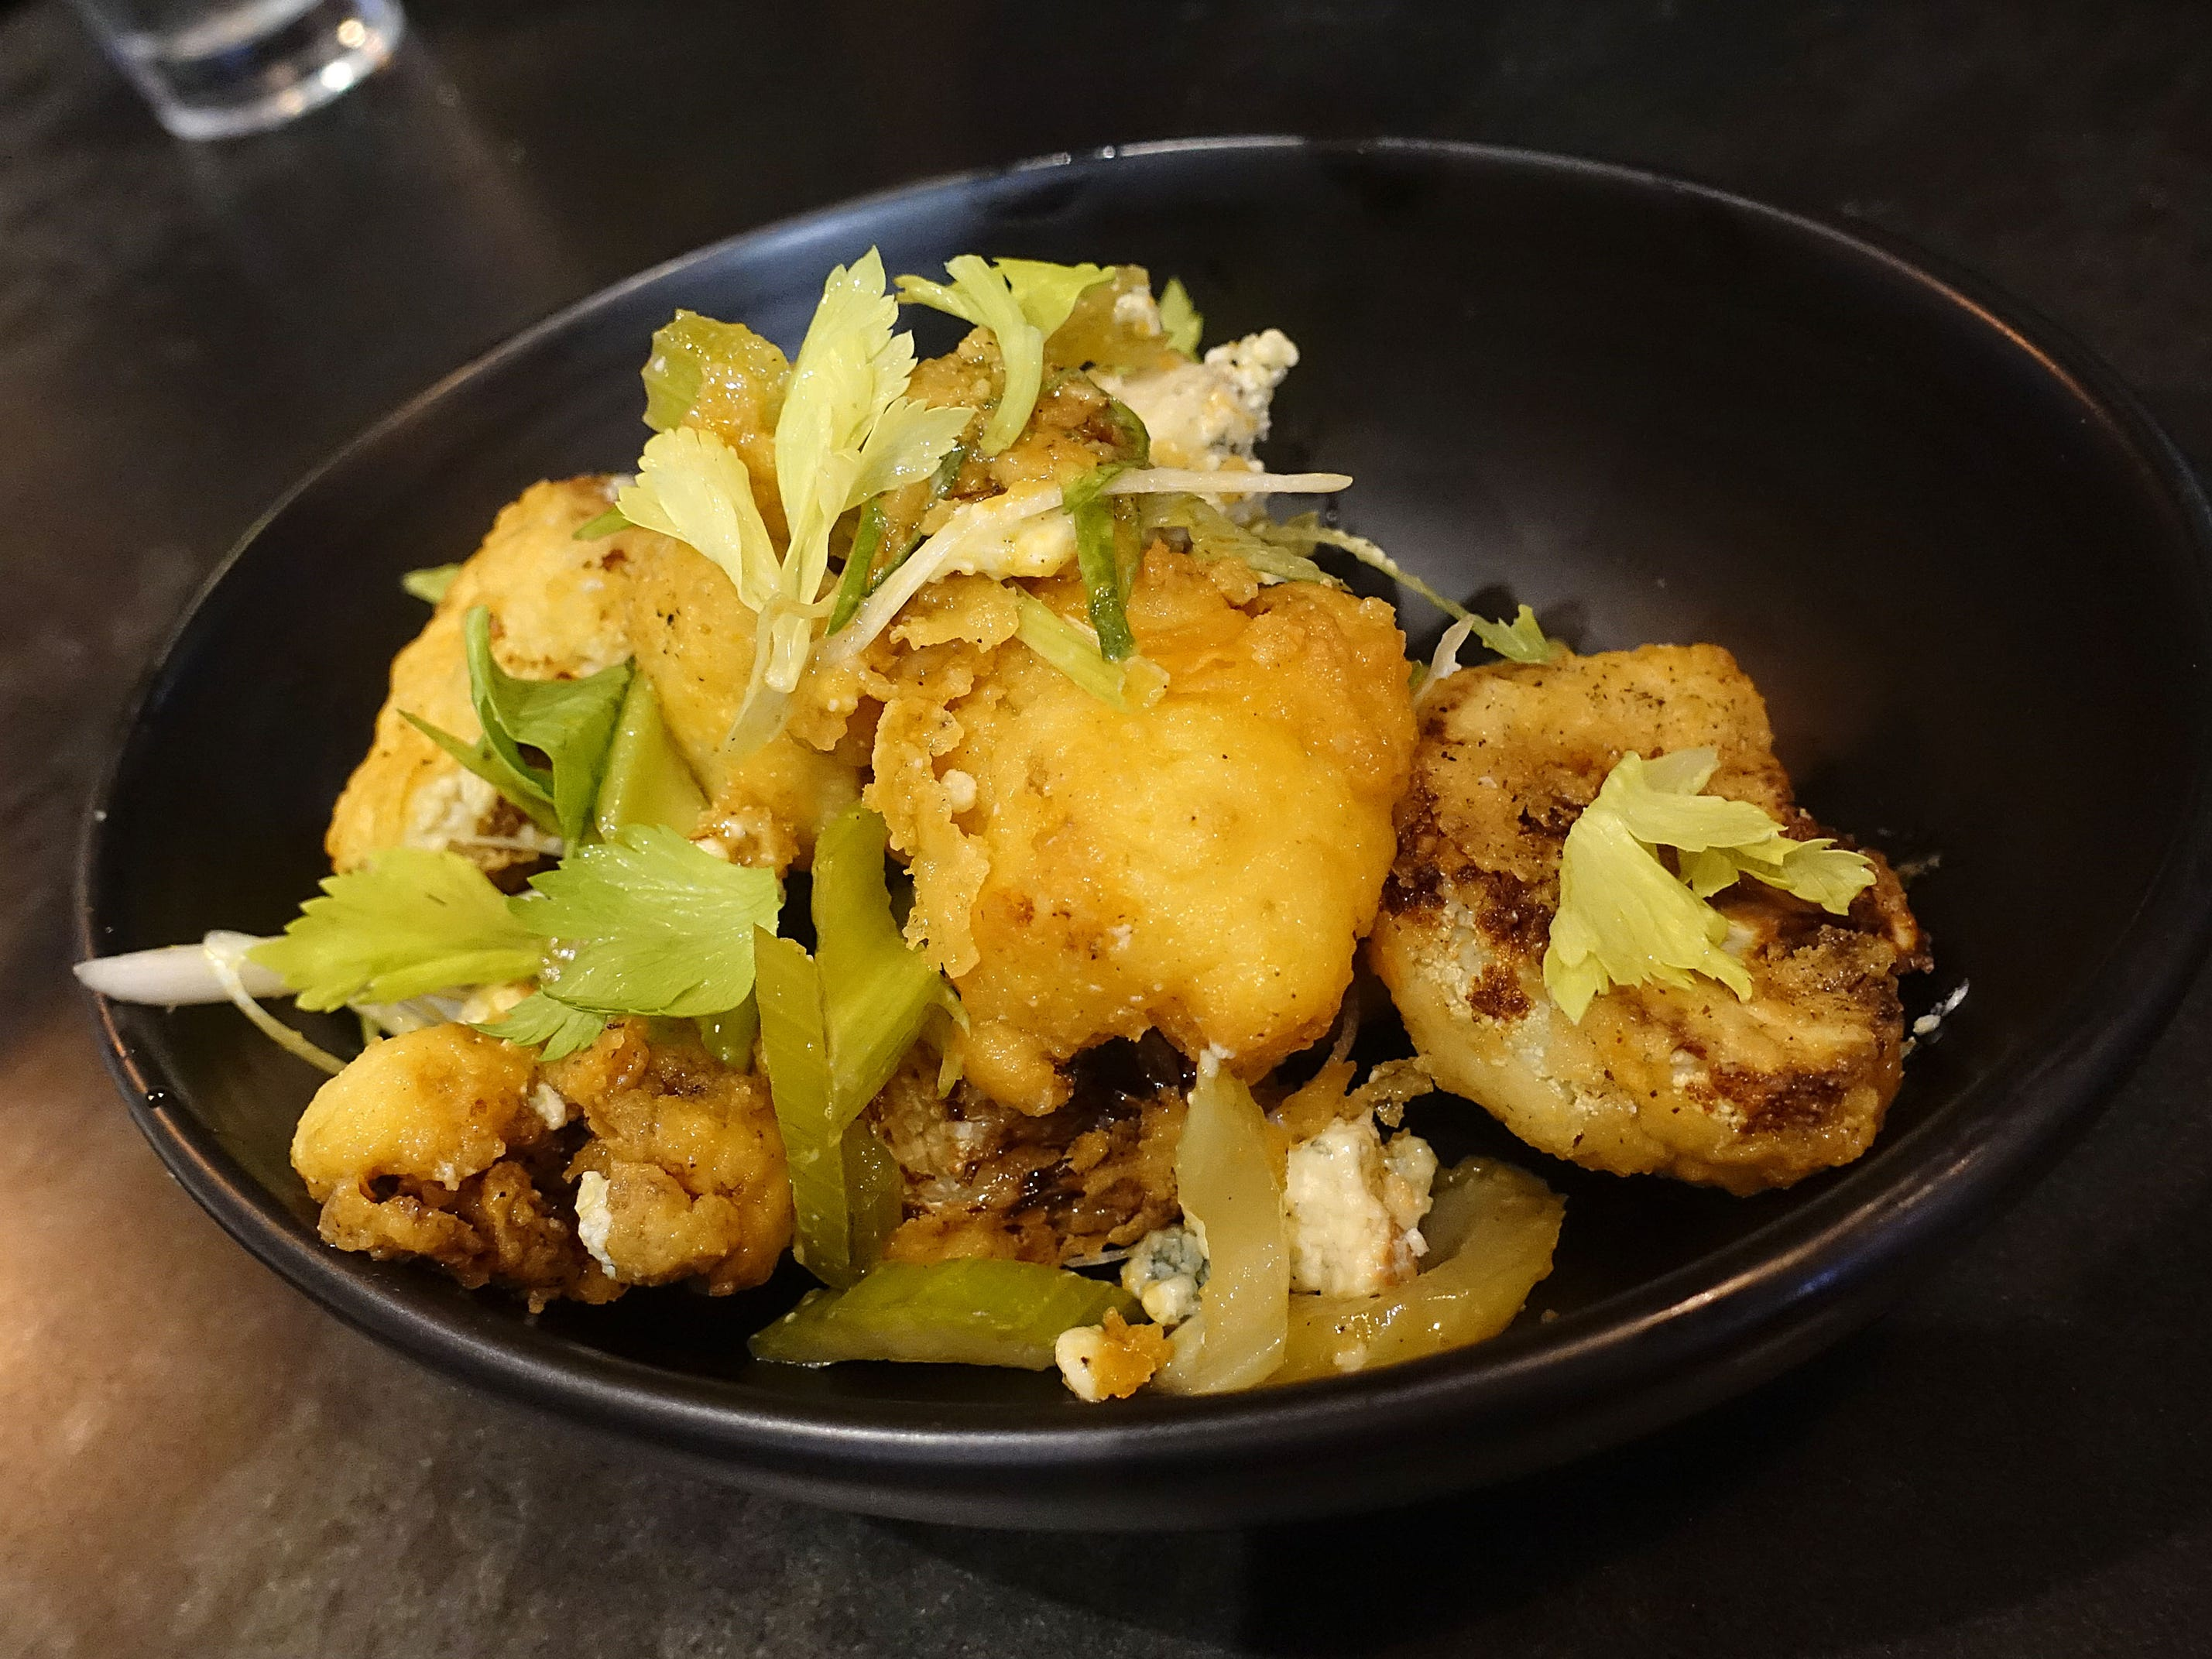 Cauliflower with Rogue Creamery smokey blue, pickled celery and Cutino's hot sauce at The Larder + The Delta in Phoenix.